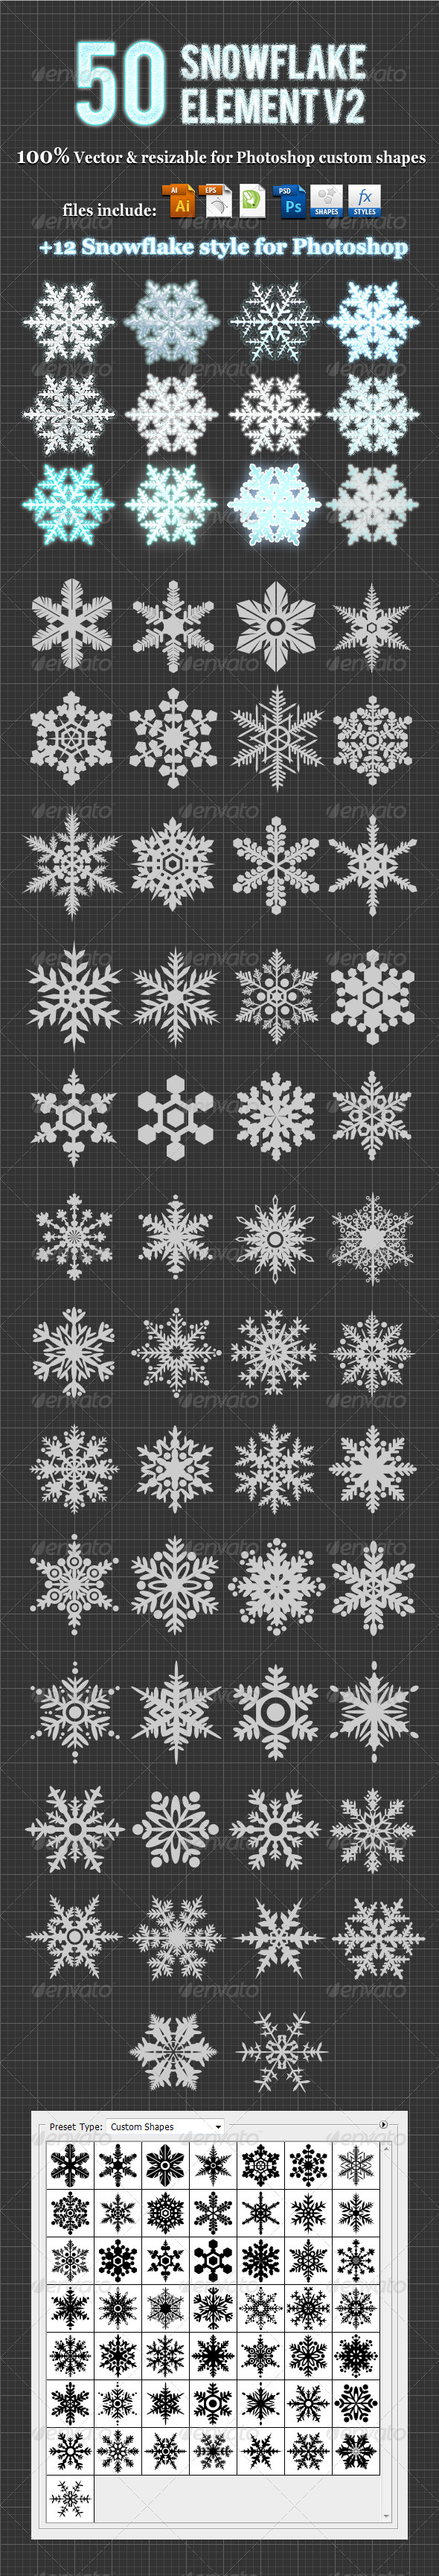 GraphicRiver 50Snowflake Element v2 Photoshop Custom Shapes 3422735